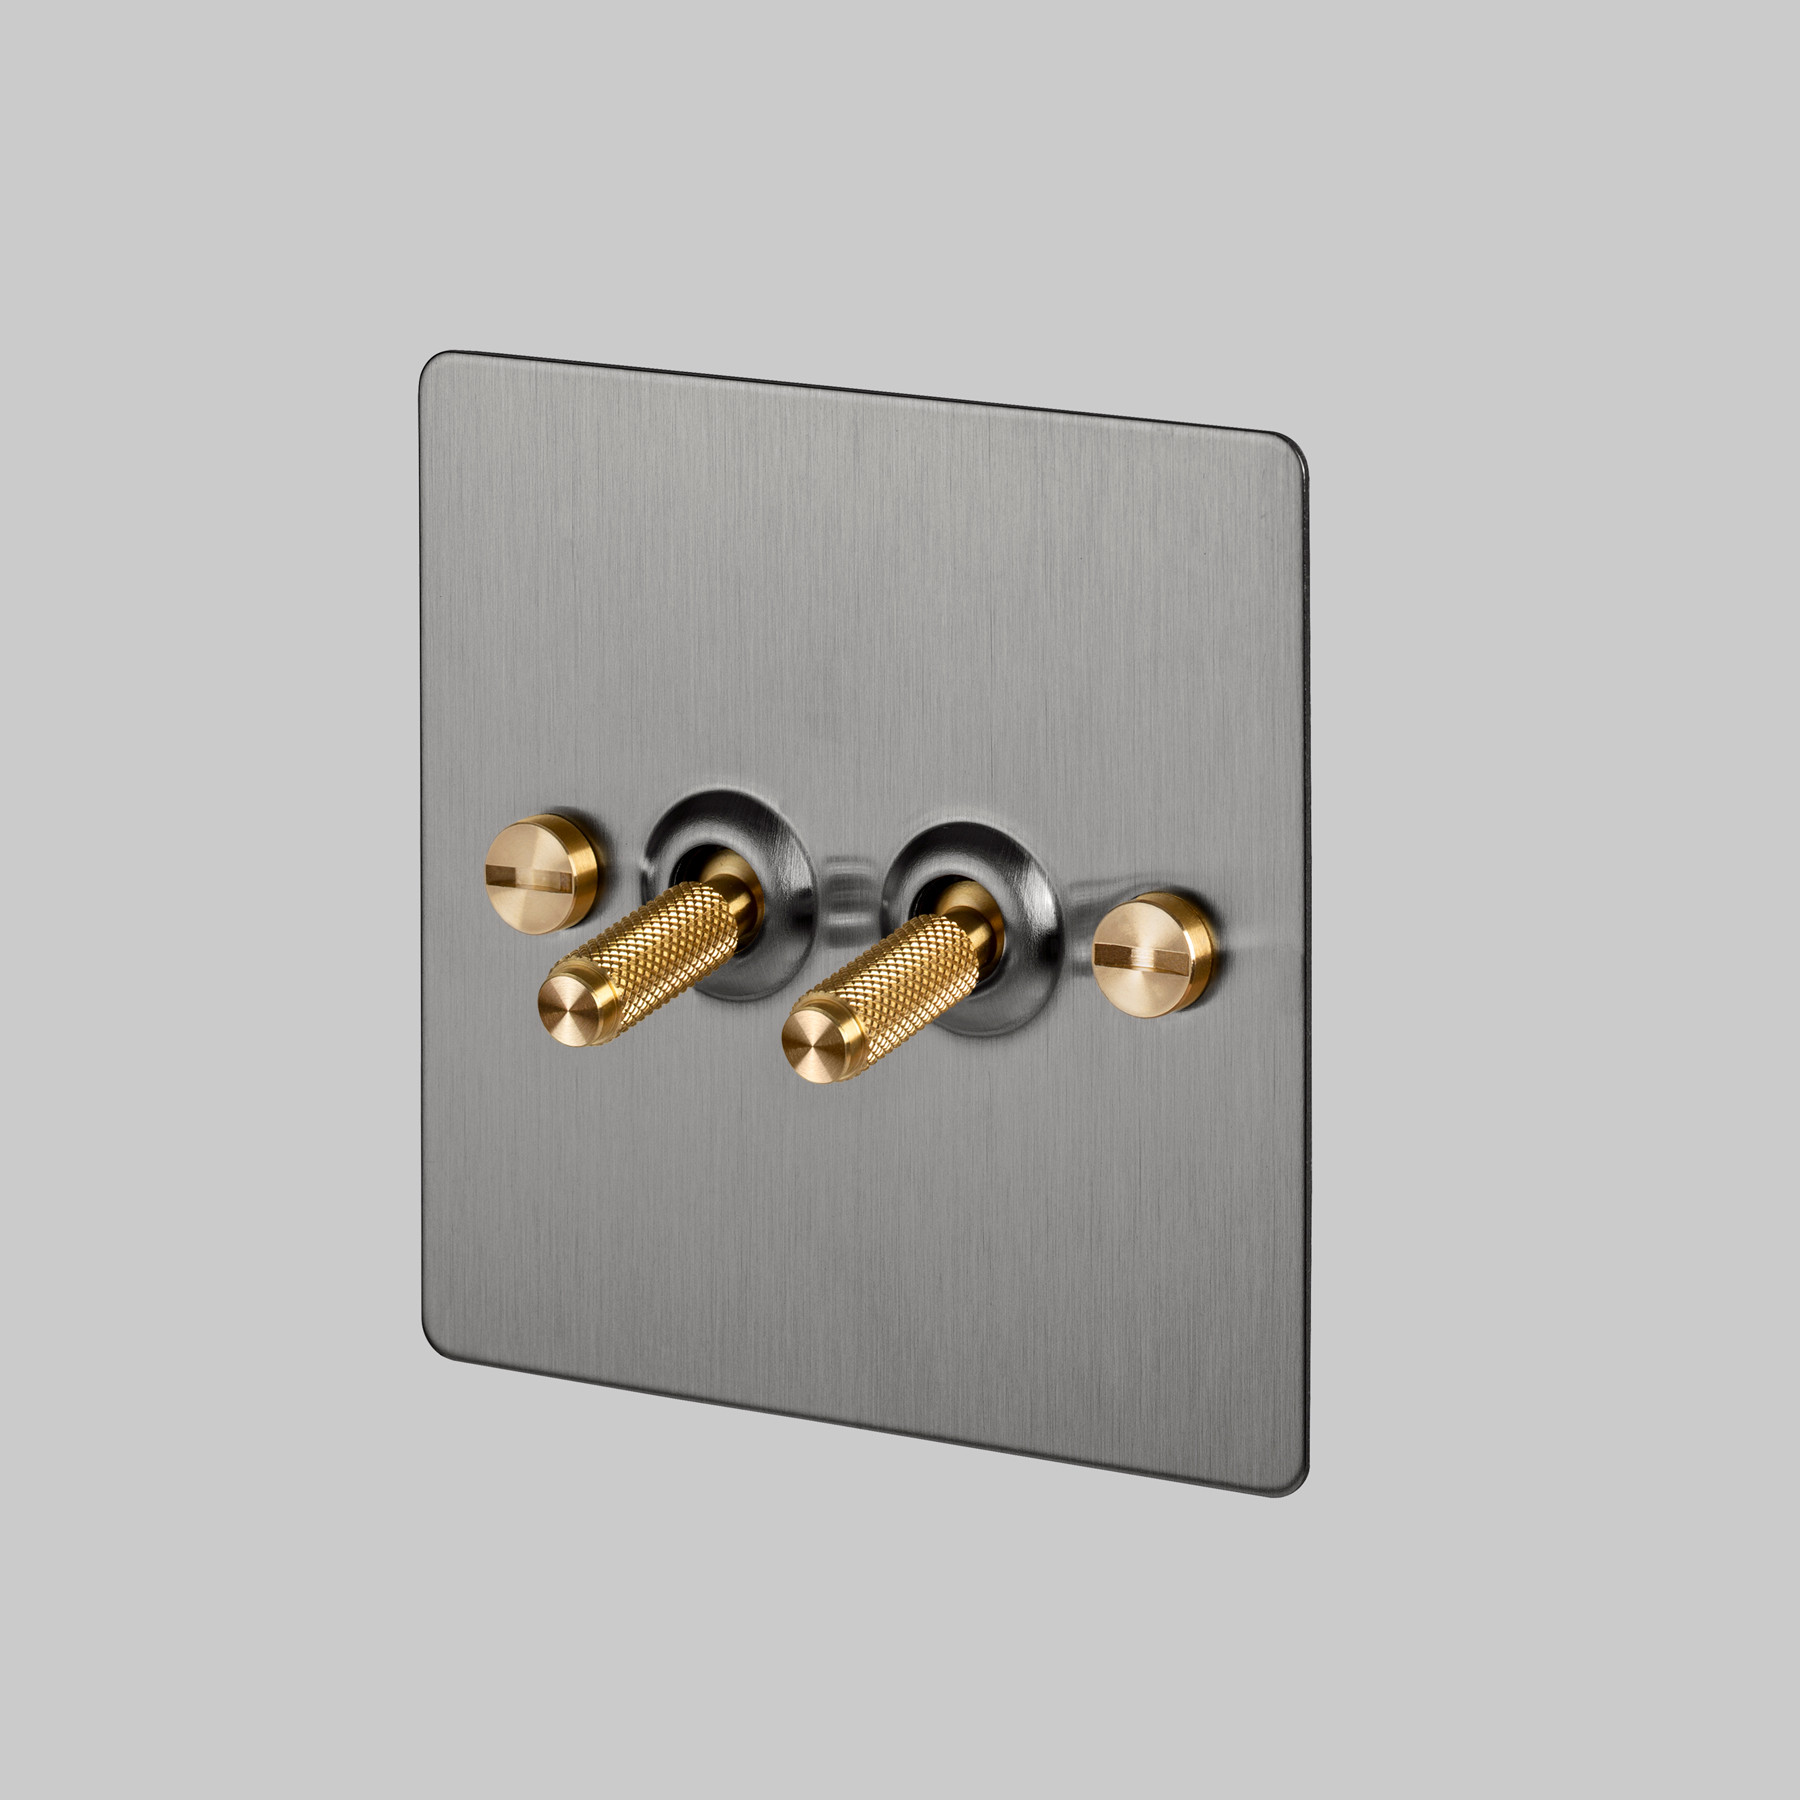 2G TOGGLE SWITCH / STEEL / BRASS